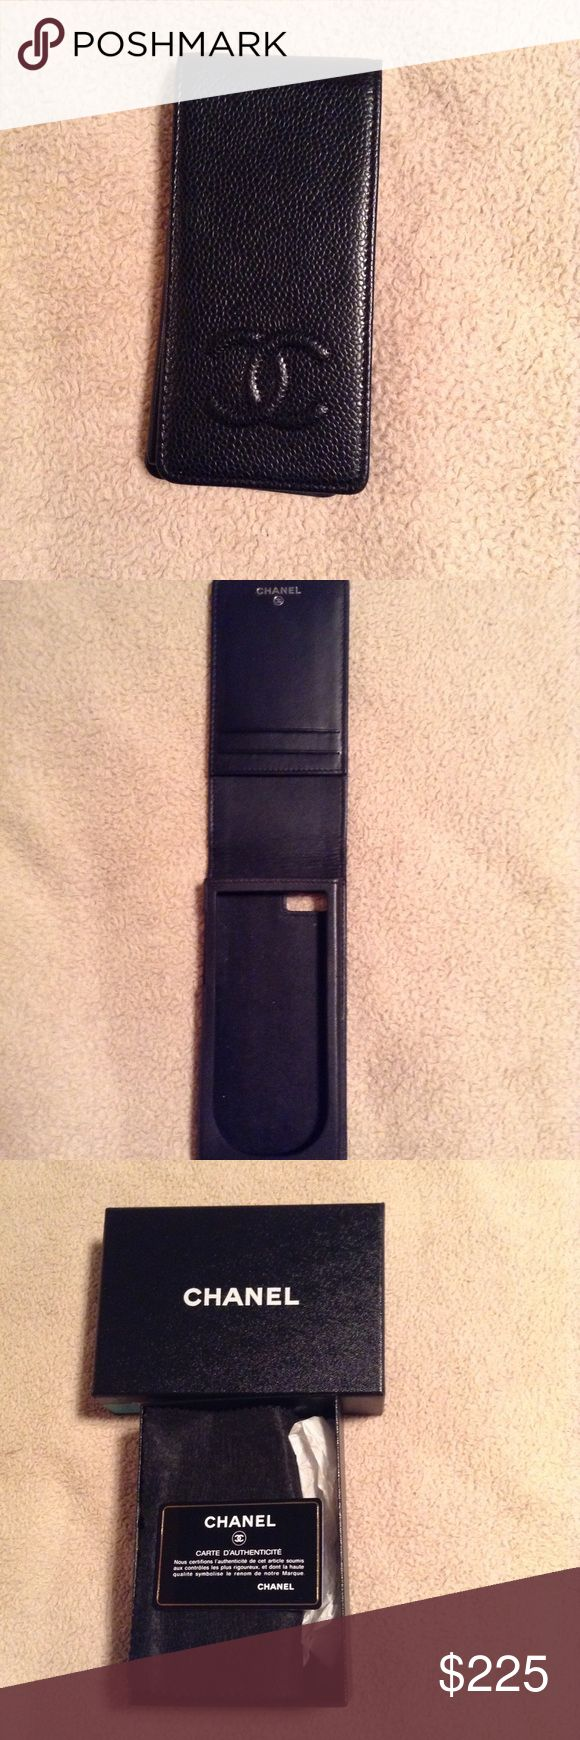 Chanel IPhone 5 Case Black Chanel IPhone 5 Case In Caviar Leather With Interlocking CC's At Front And Flap With 3 Interior Card Slits. Includes Box. In very Good Condition Faint Discoloration At Interior CHANEL Accessories Phone Cases